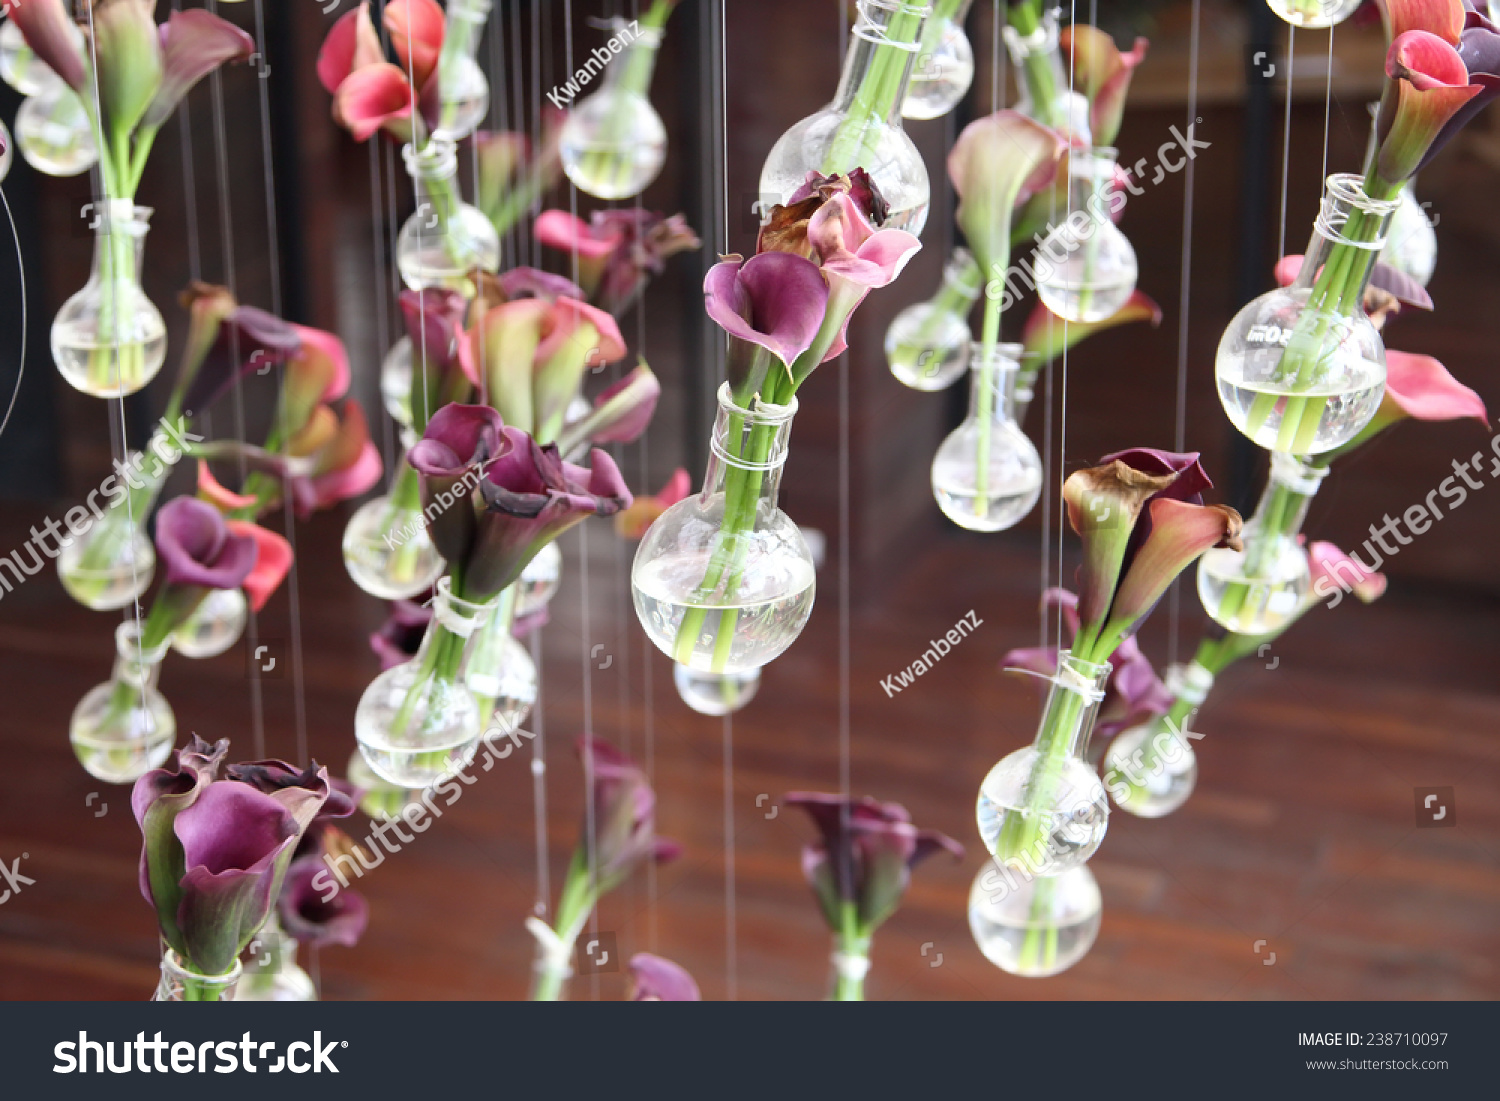 Calla lily laboratory glassware decoration stock photo edit now calla lily in laboratory glassware for decoration izmirmasajfo